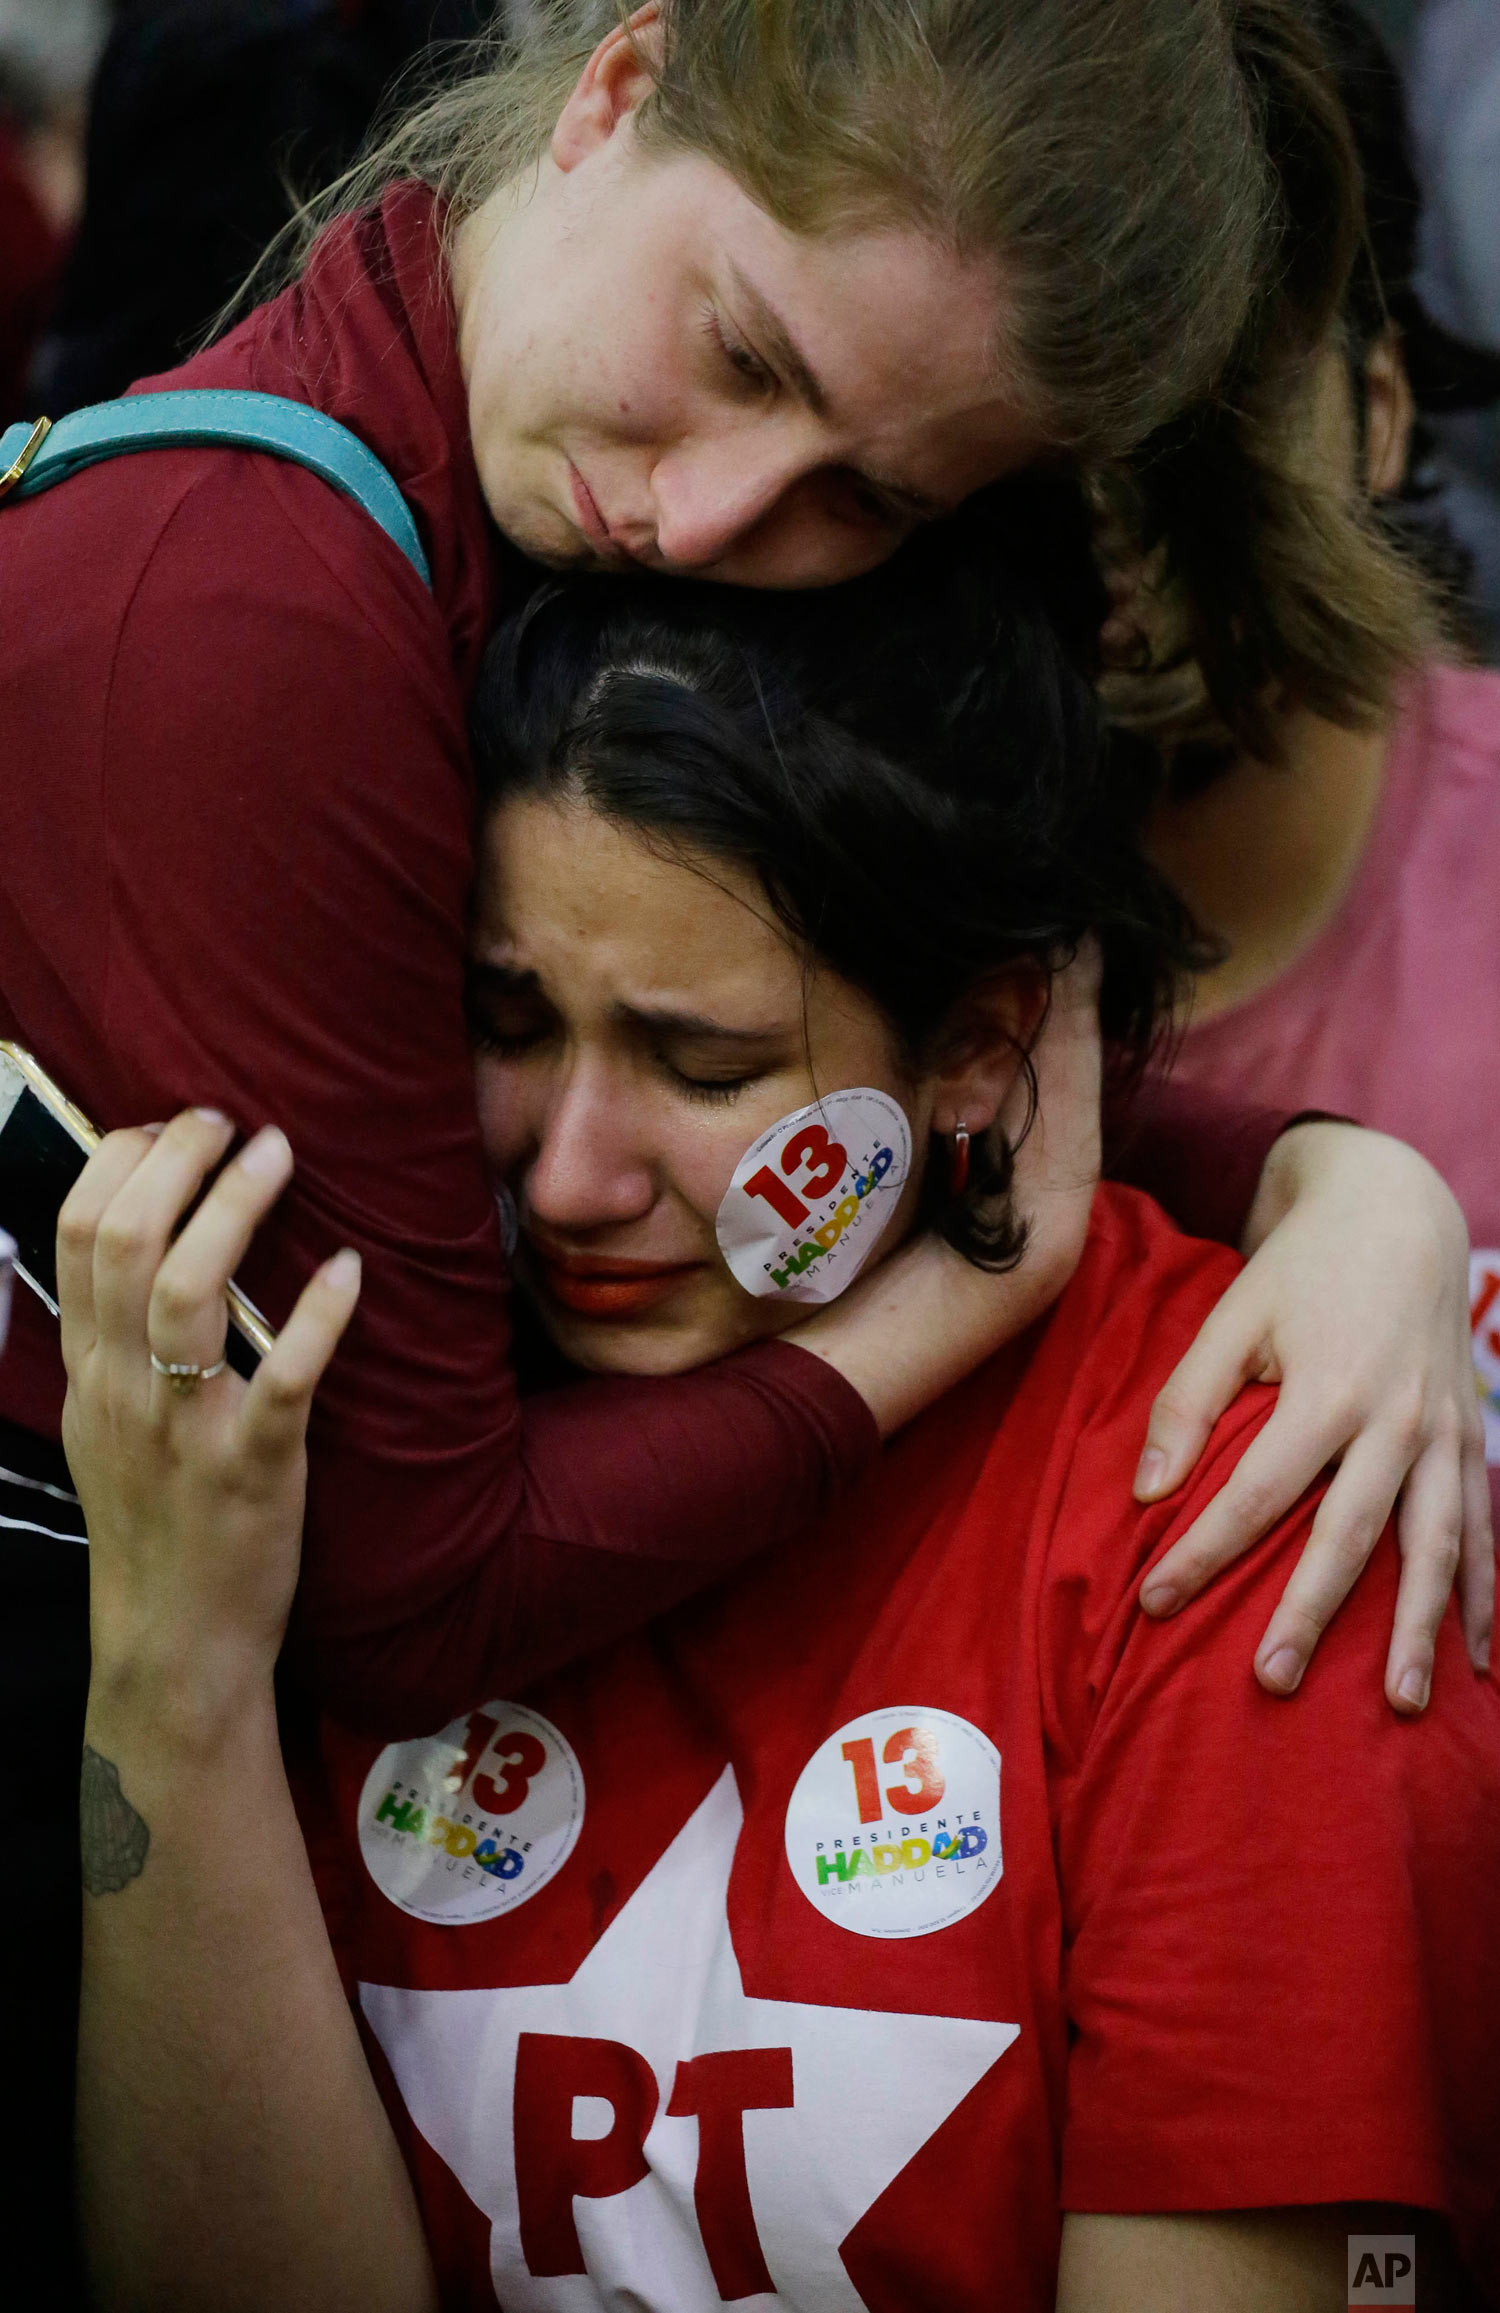 A supporter of Workers' Party presidential candidate Fernando Haddad embraces a fellow distraught supporter, after learning that rival Jair Bolsonaro was declared the winner in the presidential runoff election, in Sao Paulo, Brazil, Oct. 28, 2018. Addressing supporters in Sao Paulo, Haddad did not concede or even mention Bolsonaro by name. Instead, his speech was a promise to resist. (AP Photo/Nelson Antoine)